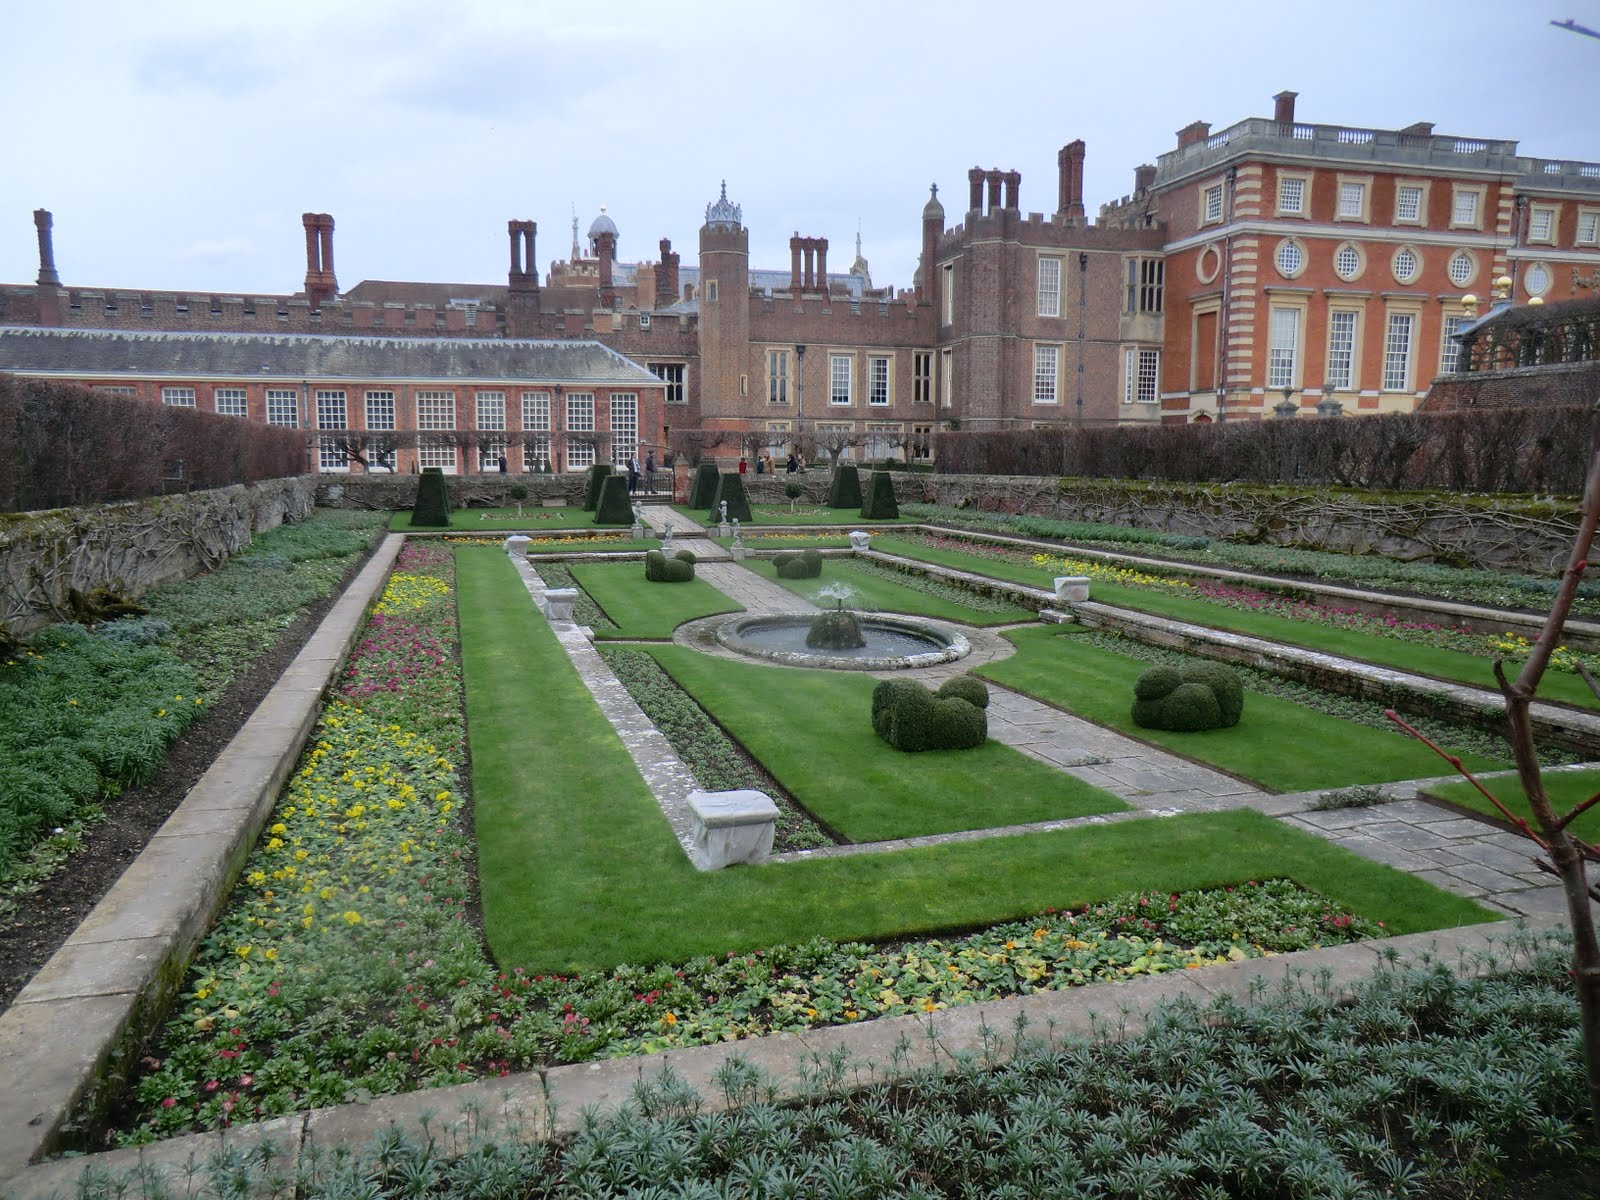 CIMG2704 Pond Garden, Hampton Court Palace